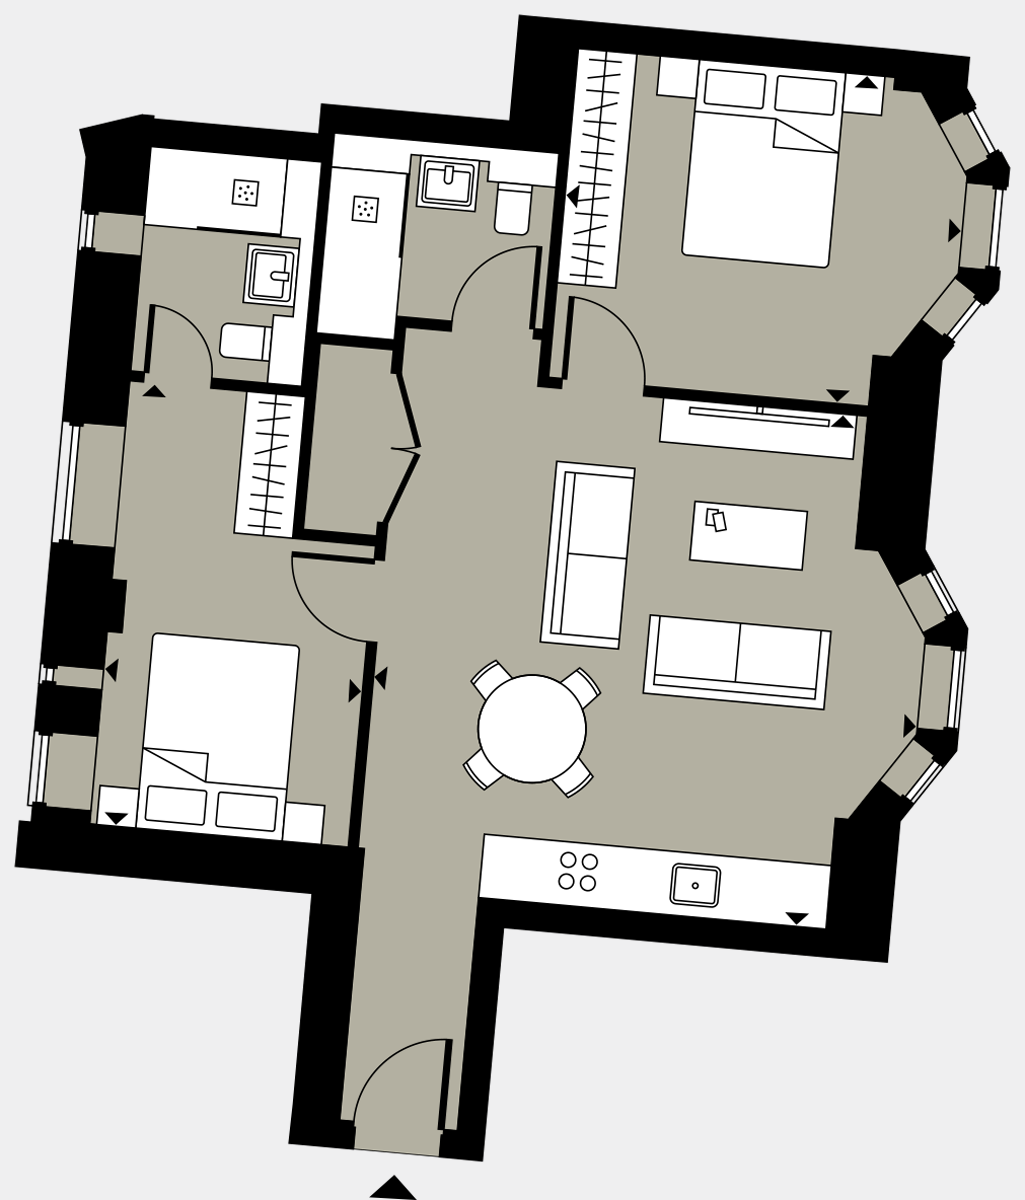 Brigade Court London SE1 Apartment floorplan - L2 17 Davies House